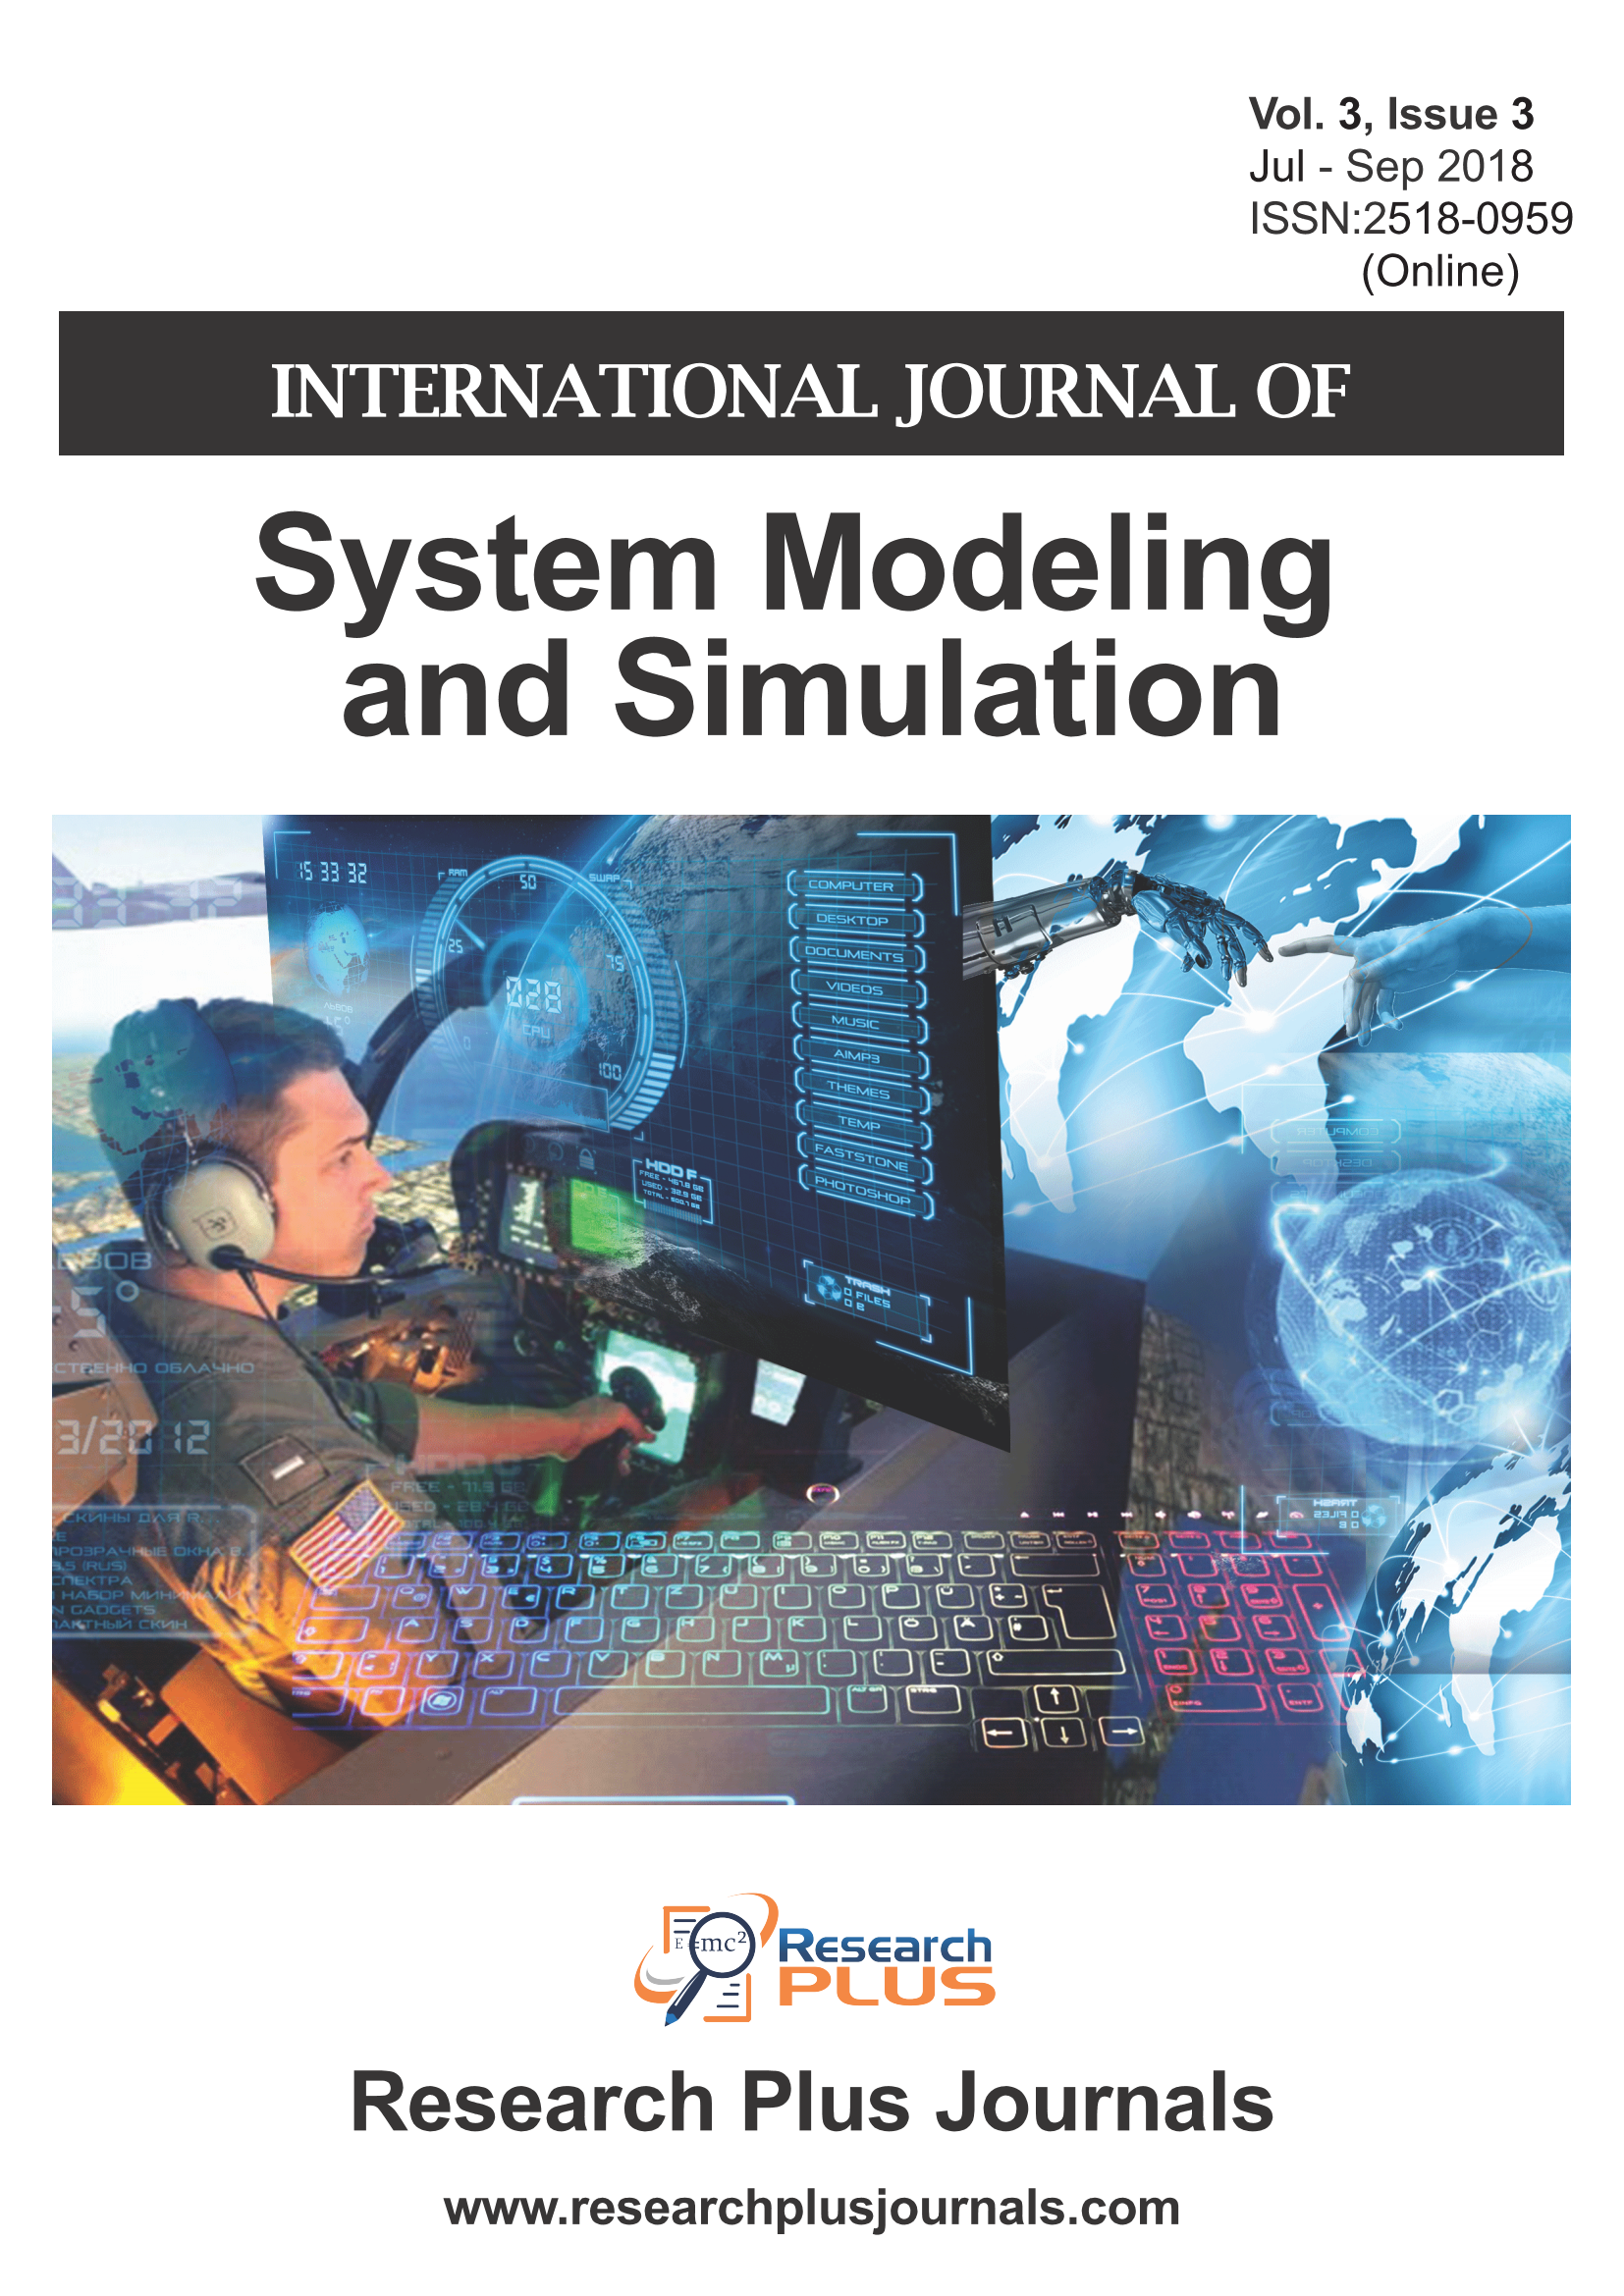 Volume 3, Issue 3, International Journal of System Modeling and Simulation (IJSMS)  (Online ISSN: 2518-0959)